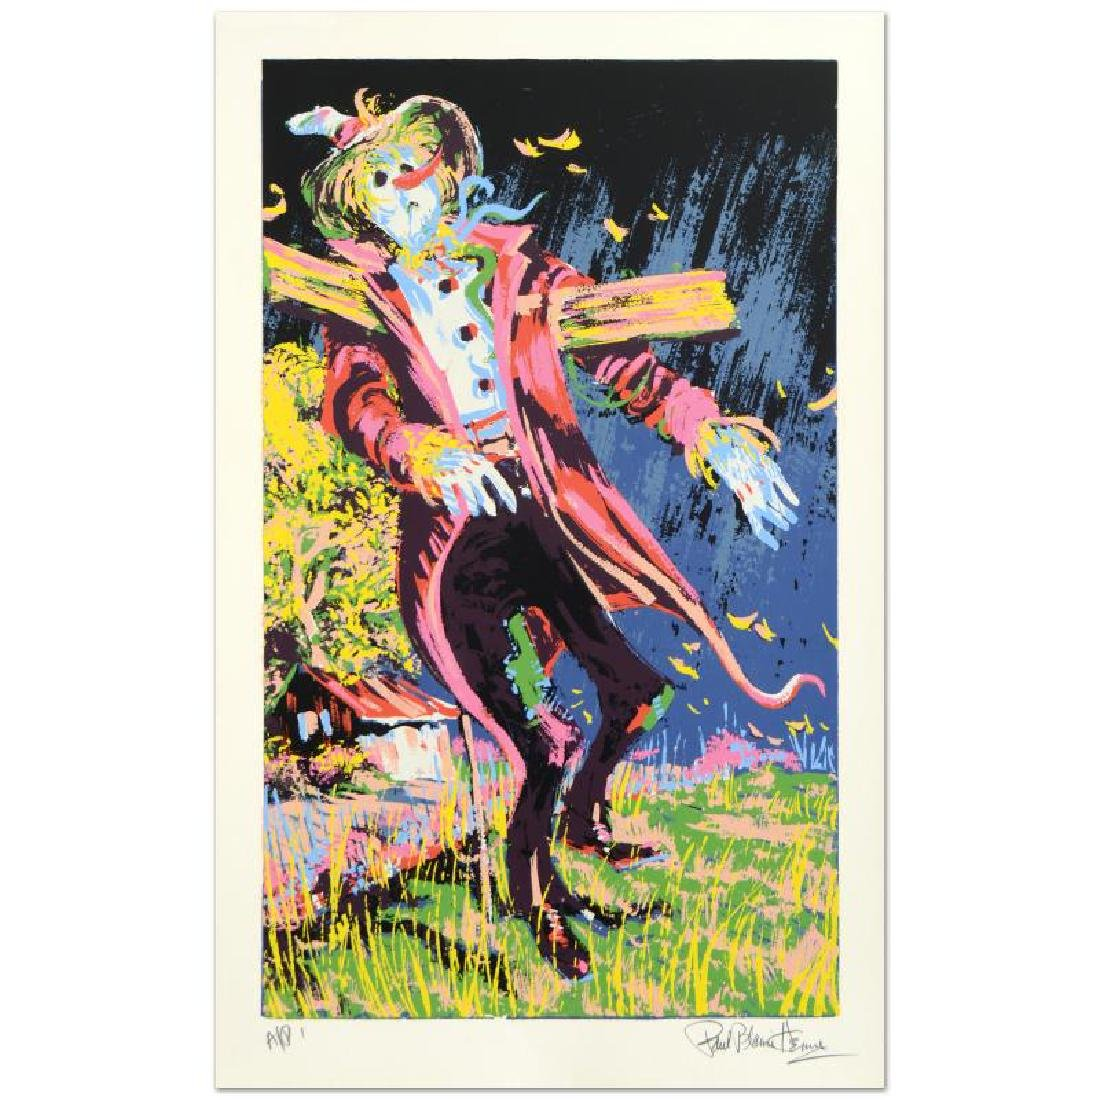 Scare Crow Limited Edition Serigraph by Paul Blaine